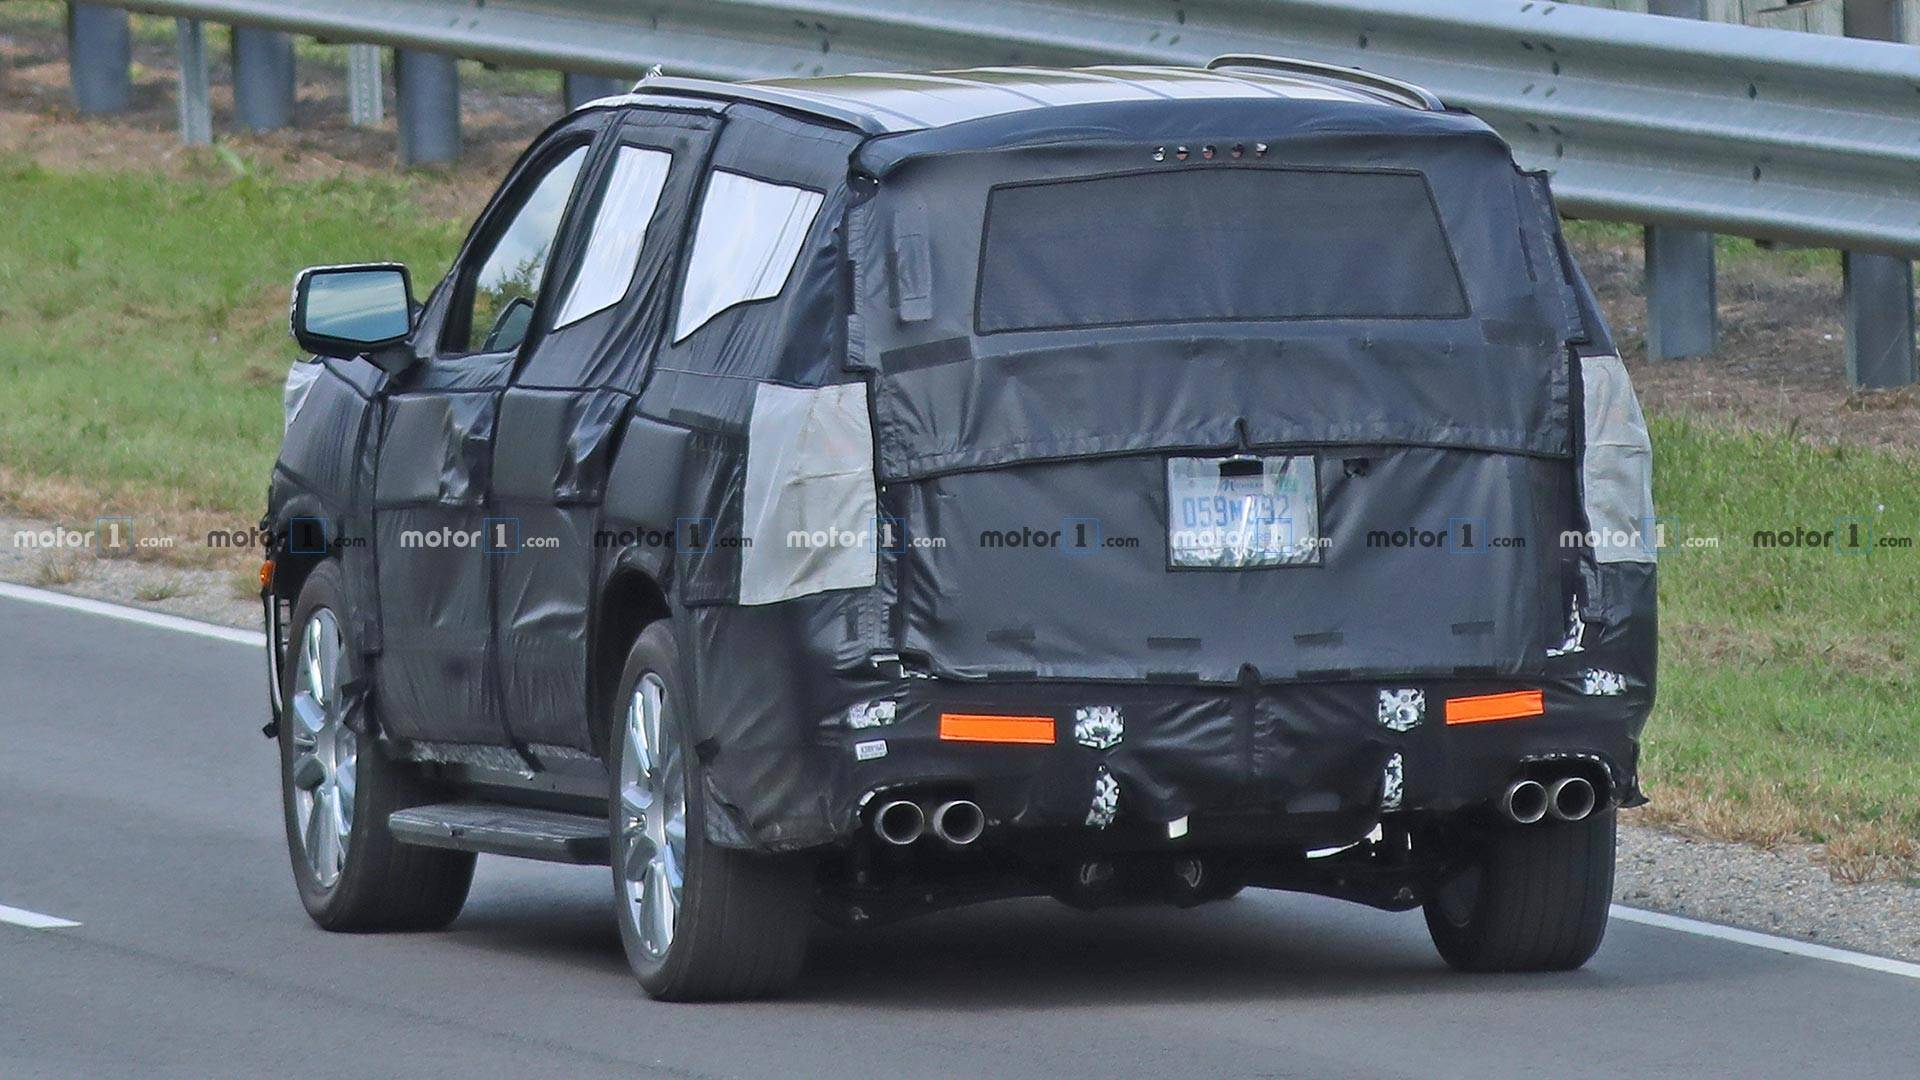 2020 Chevy Tahoe: Redesign, Changes, Engines, Debut >> Next Chevrolet Tahoe Spied Riding On Independent Rear Suspension